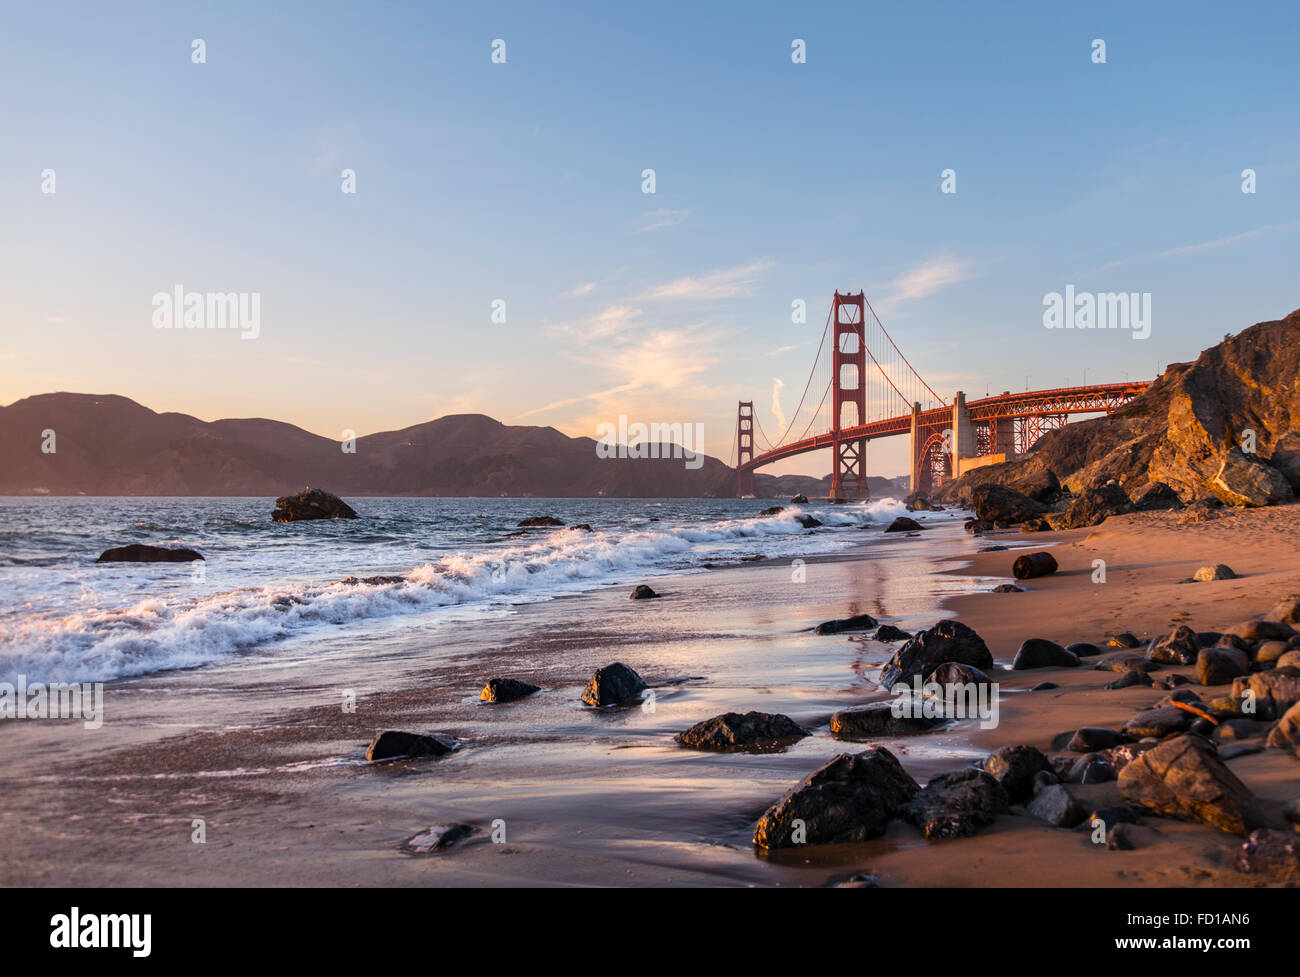 Golden Gate Bridge, Marshall's Beach, rocky coast, San Francisco, USA - Stock Image